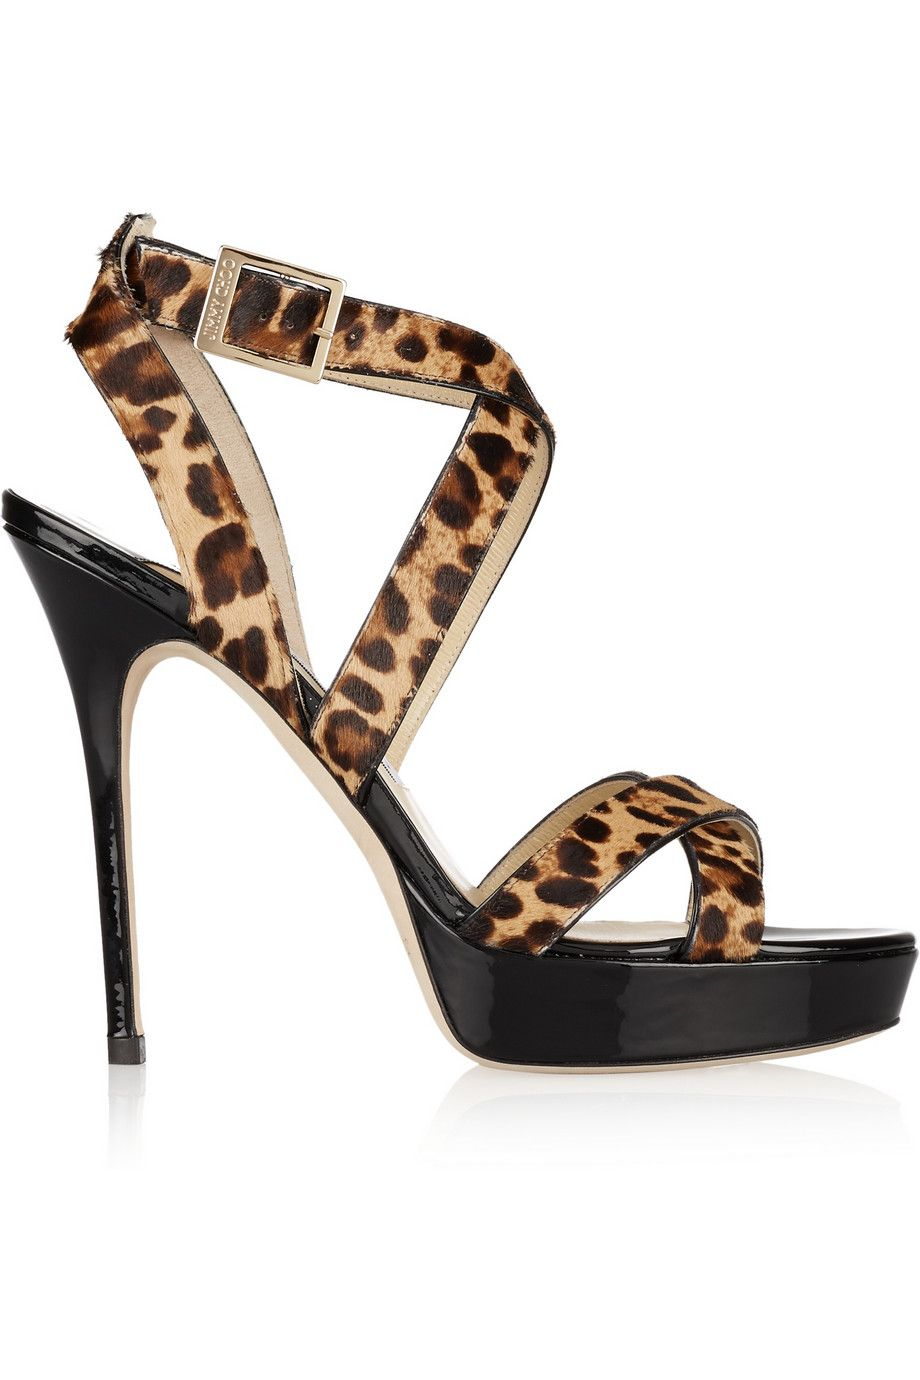 Jimmy ChooVamp leopard-print calf hair and patent-leather sandals